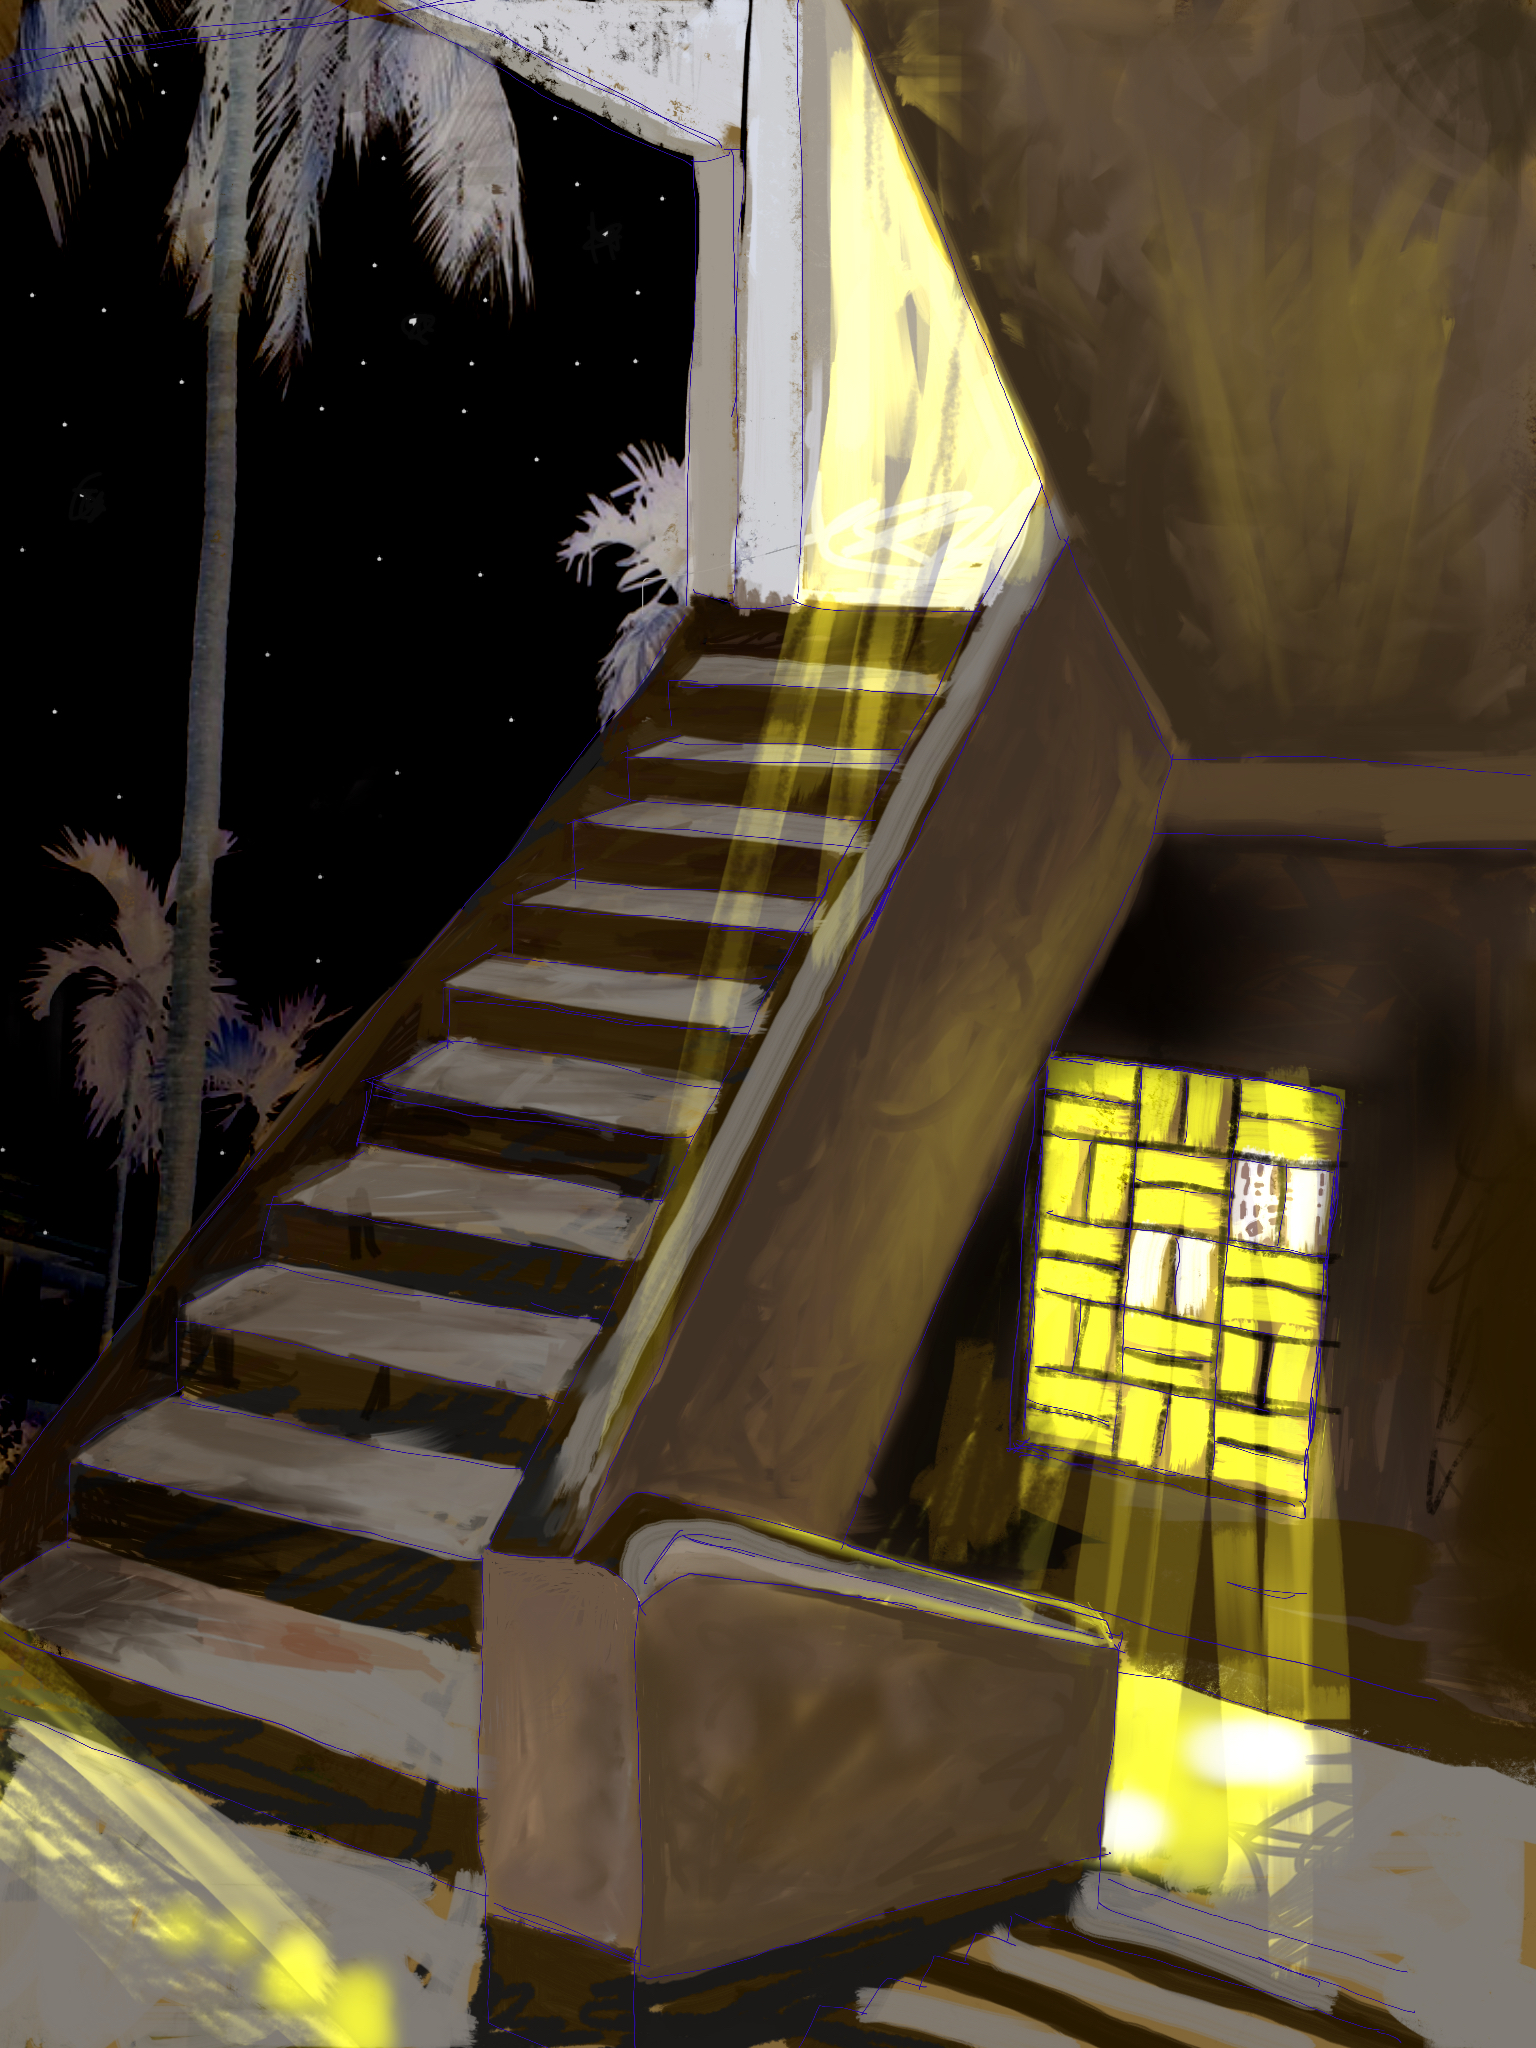 """Stairs to the Temple Room, Home, Baguiati   Electronics Painting, iPad, Procreate, Pencil 53, Photoshop. © 2016 dimensions variable to 48"""" x 60"""" giclee limited edition prints available contact the artist"""